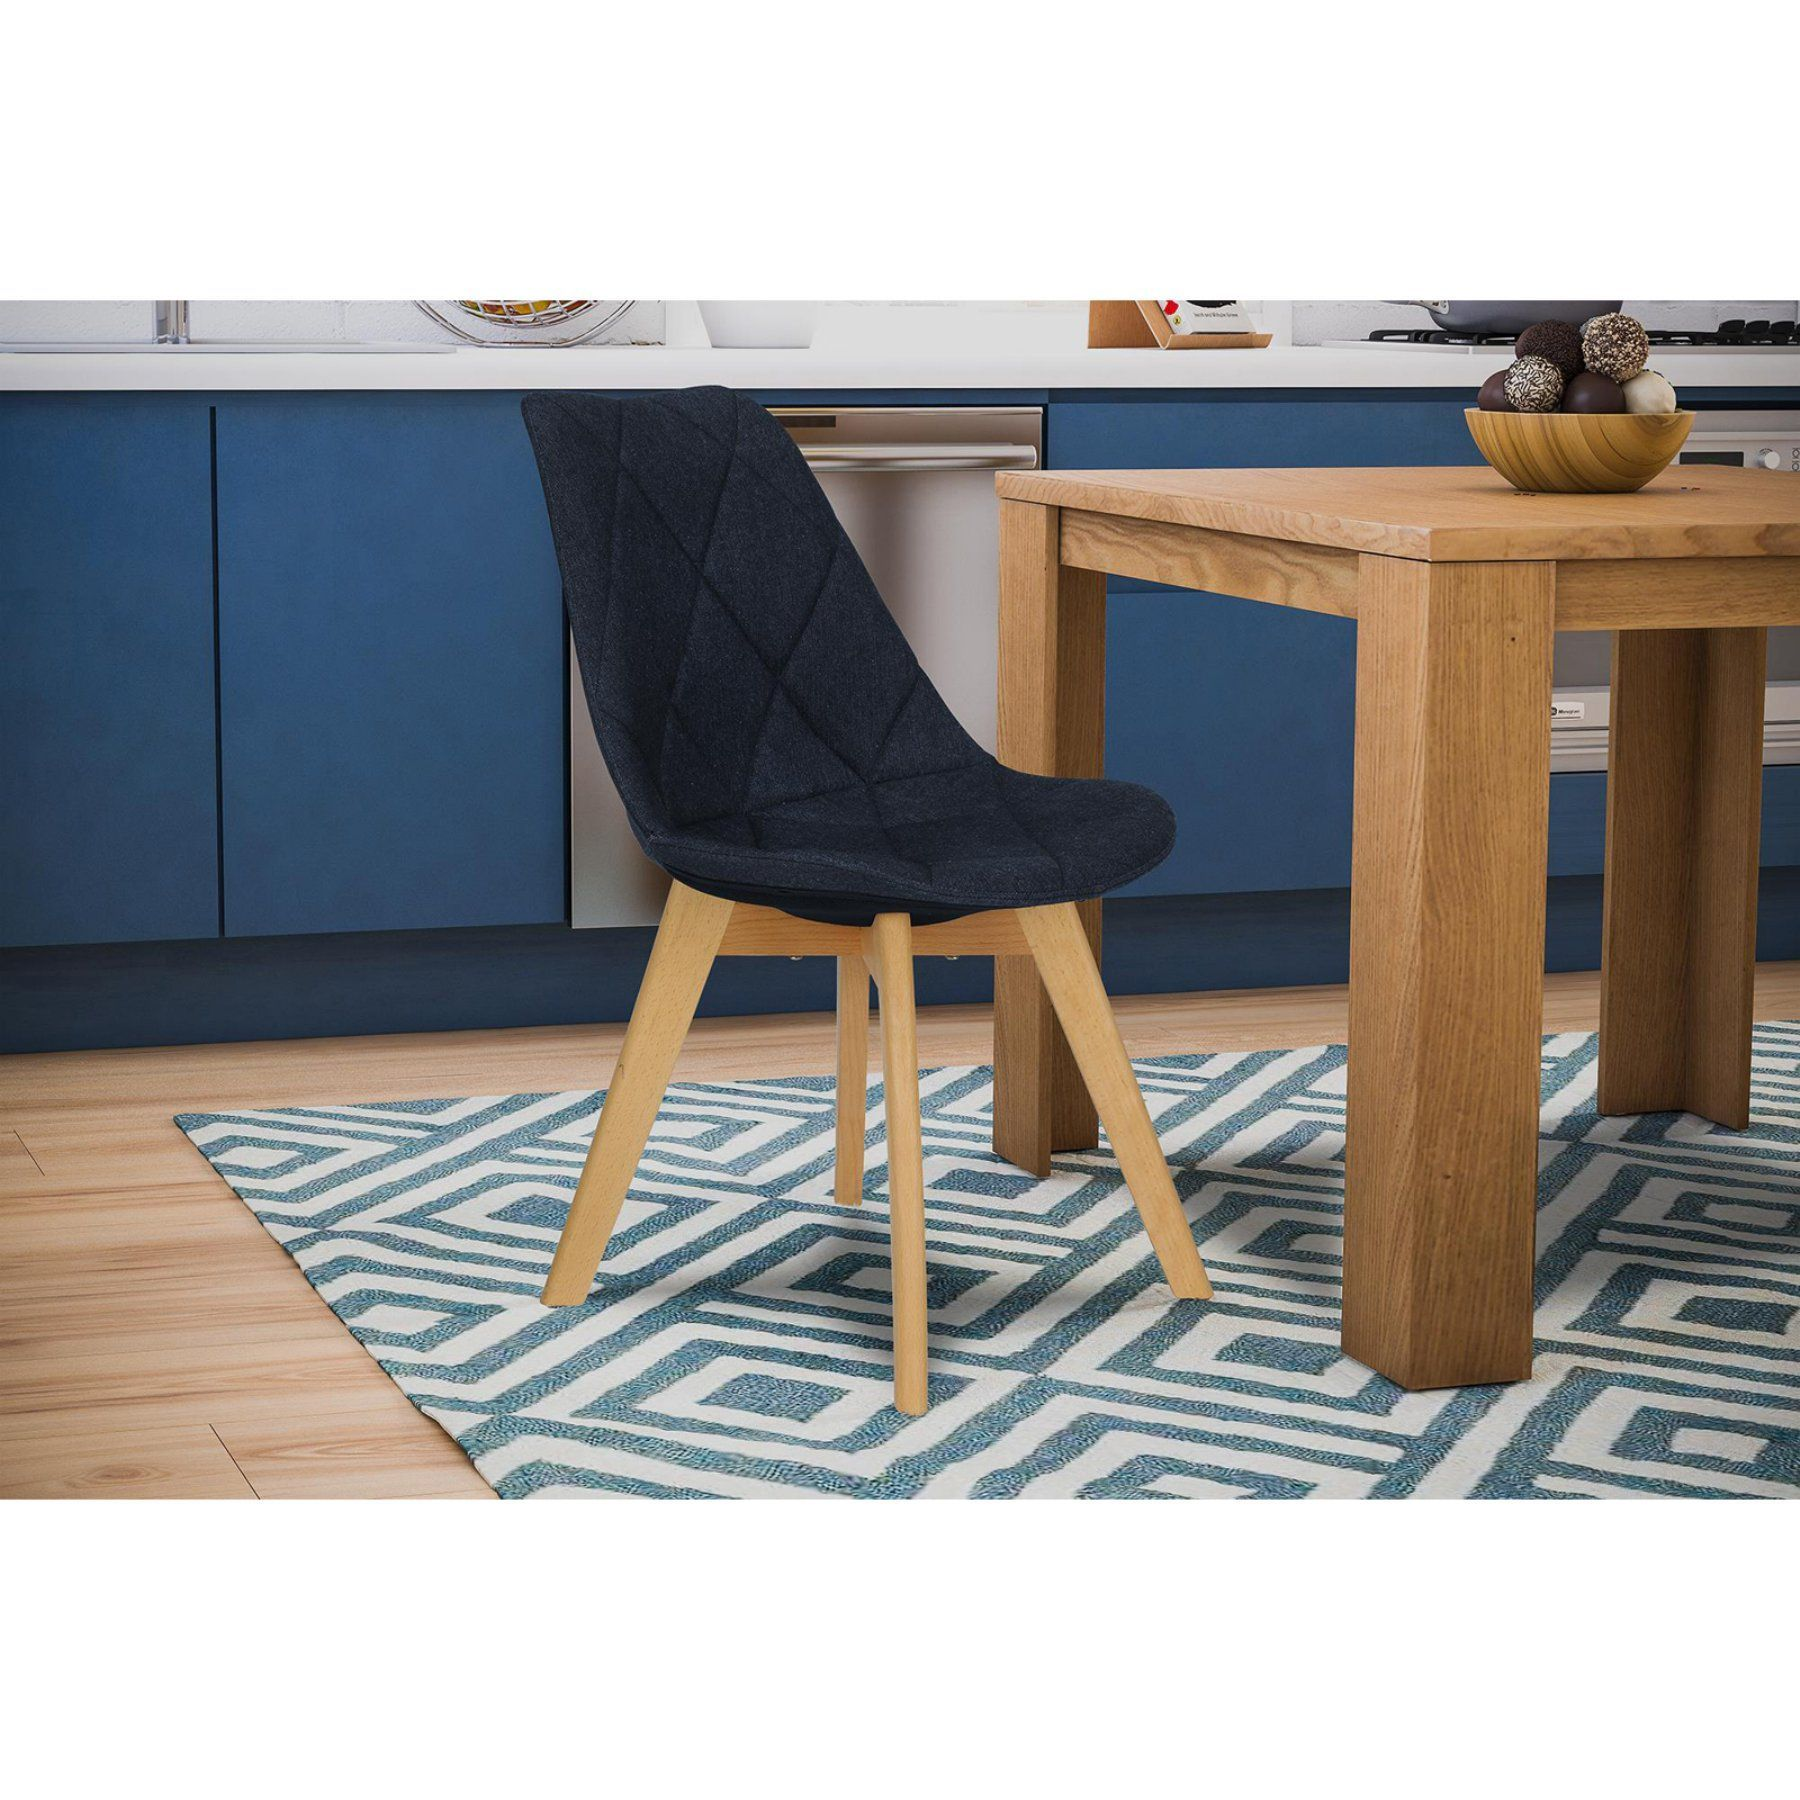 Dhp Brisbane Dining Side Chair In 2019 Products Dining Chairs